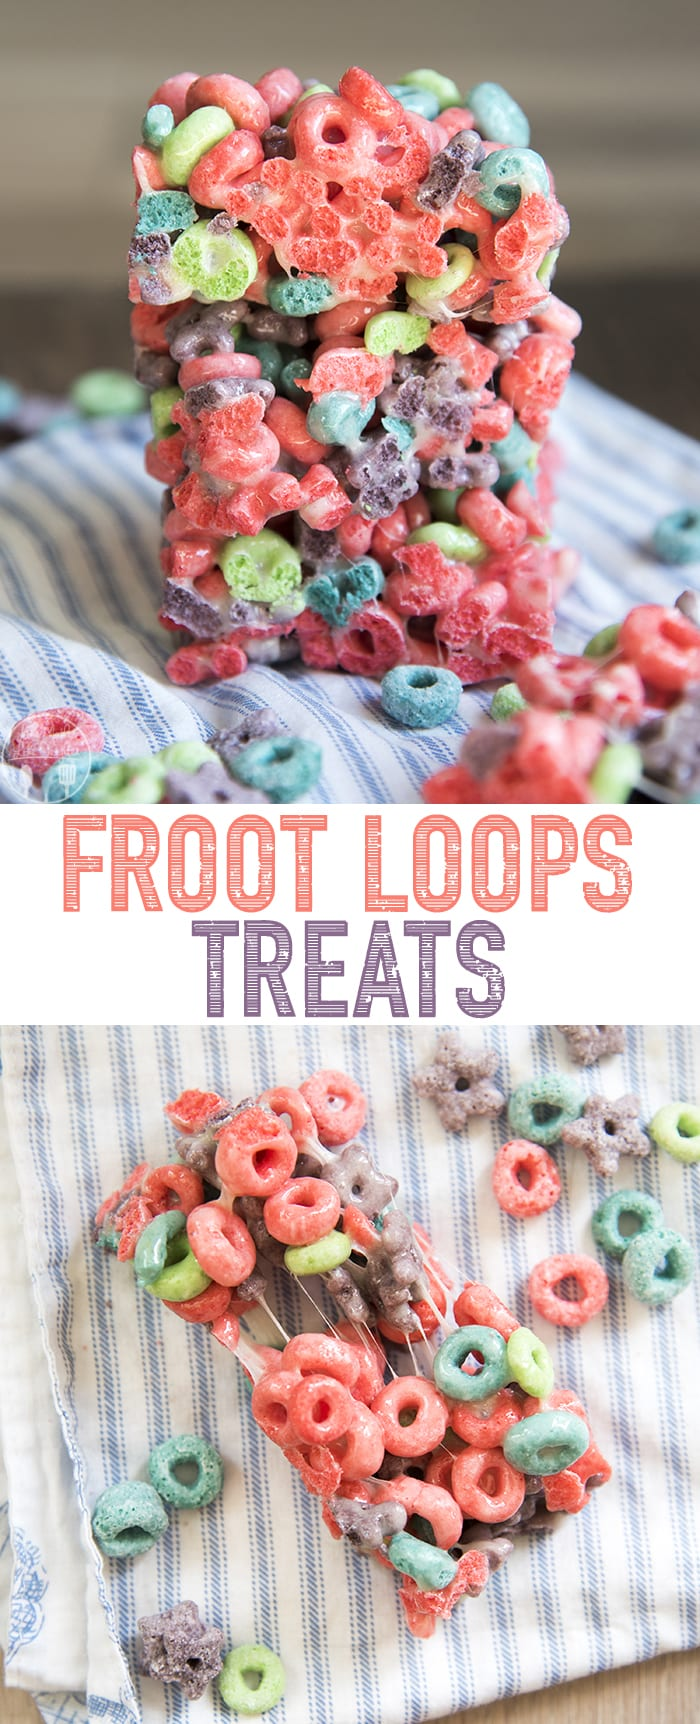 Froot Loop<b><i>s®</i></b> Treats are a delicious twist on classic cereal treats, </em><b><i>Kellogg's® Wild Berry Froouit Loops® instead of crisp rice cereal.